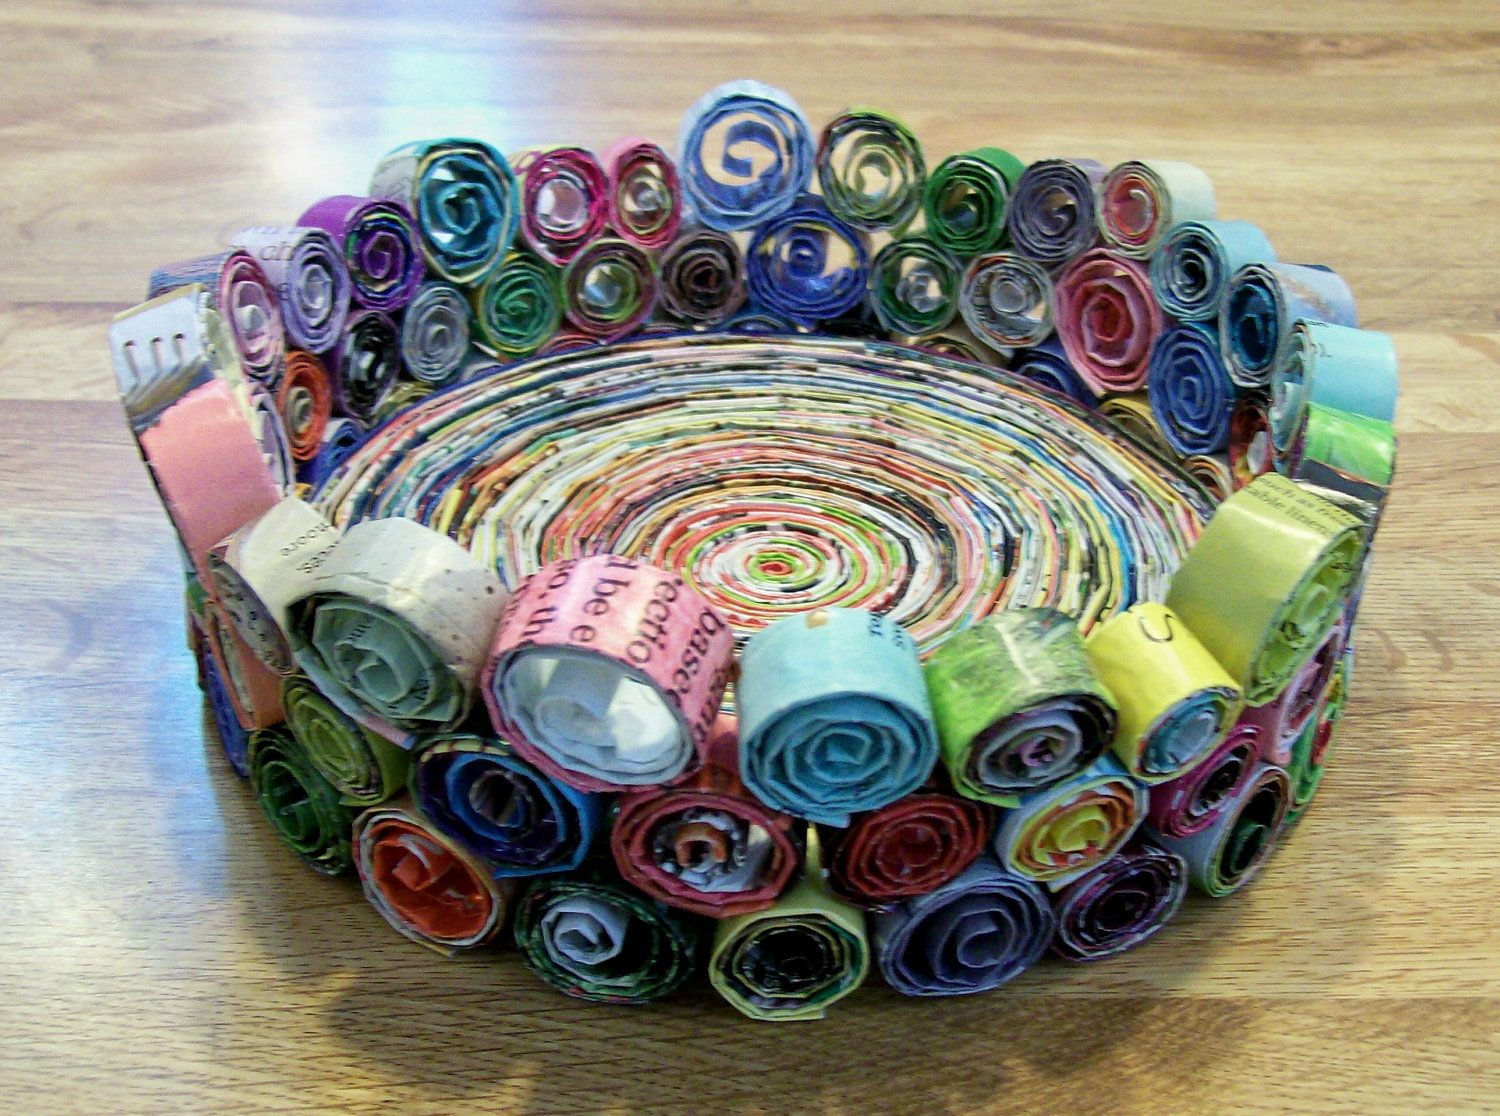 Handmade Bowl Made From Recycled Magazines Upcycled 29